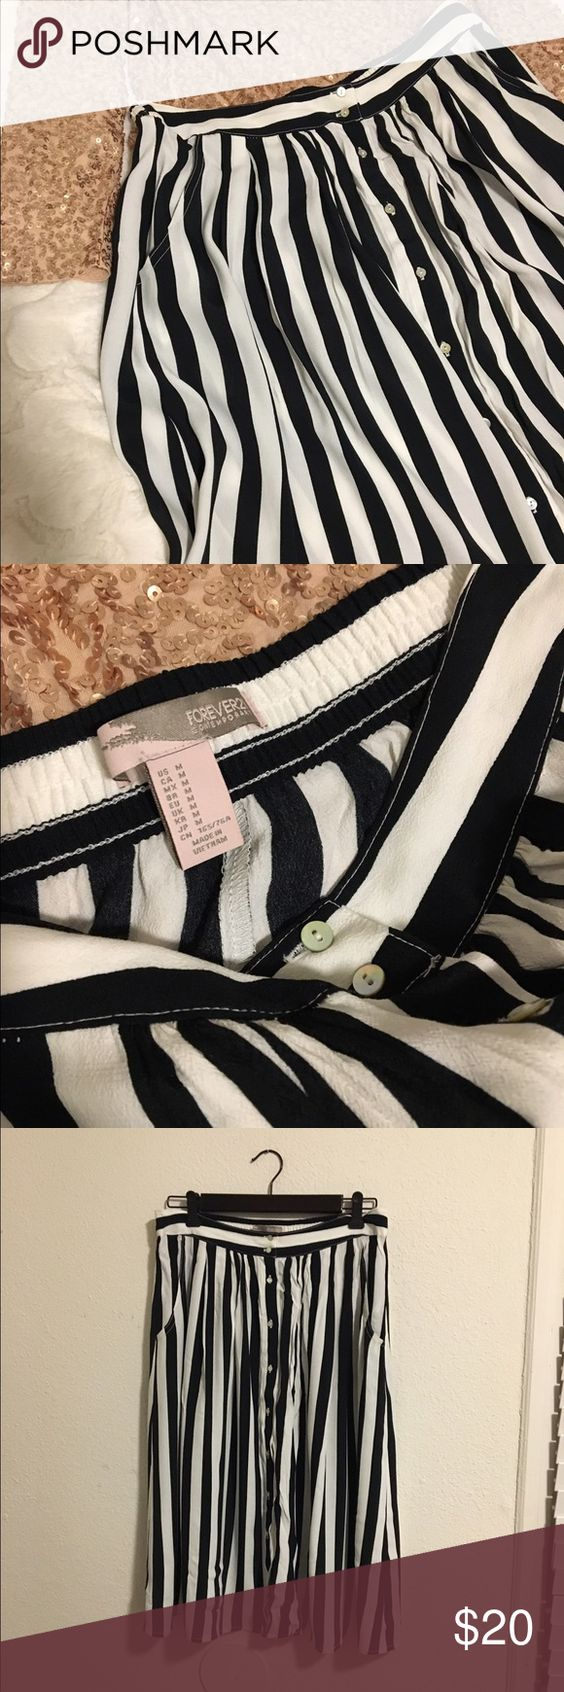 Black and white striped skirt Midi skirt with front buttons and pockets! Approximately 26 inches long. Never worn. No flaws.  please no trades. Use the offer button  Forever 21 Skirts Midi